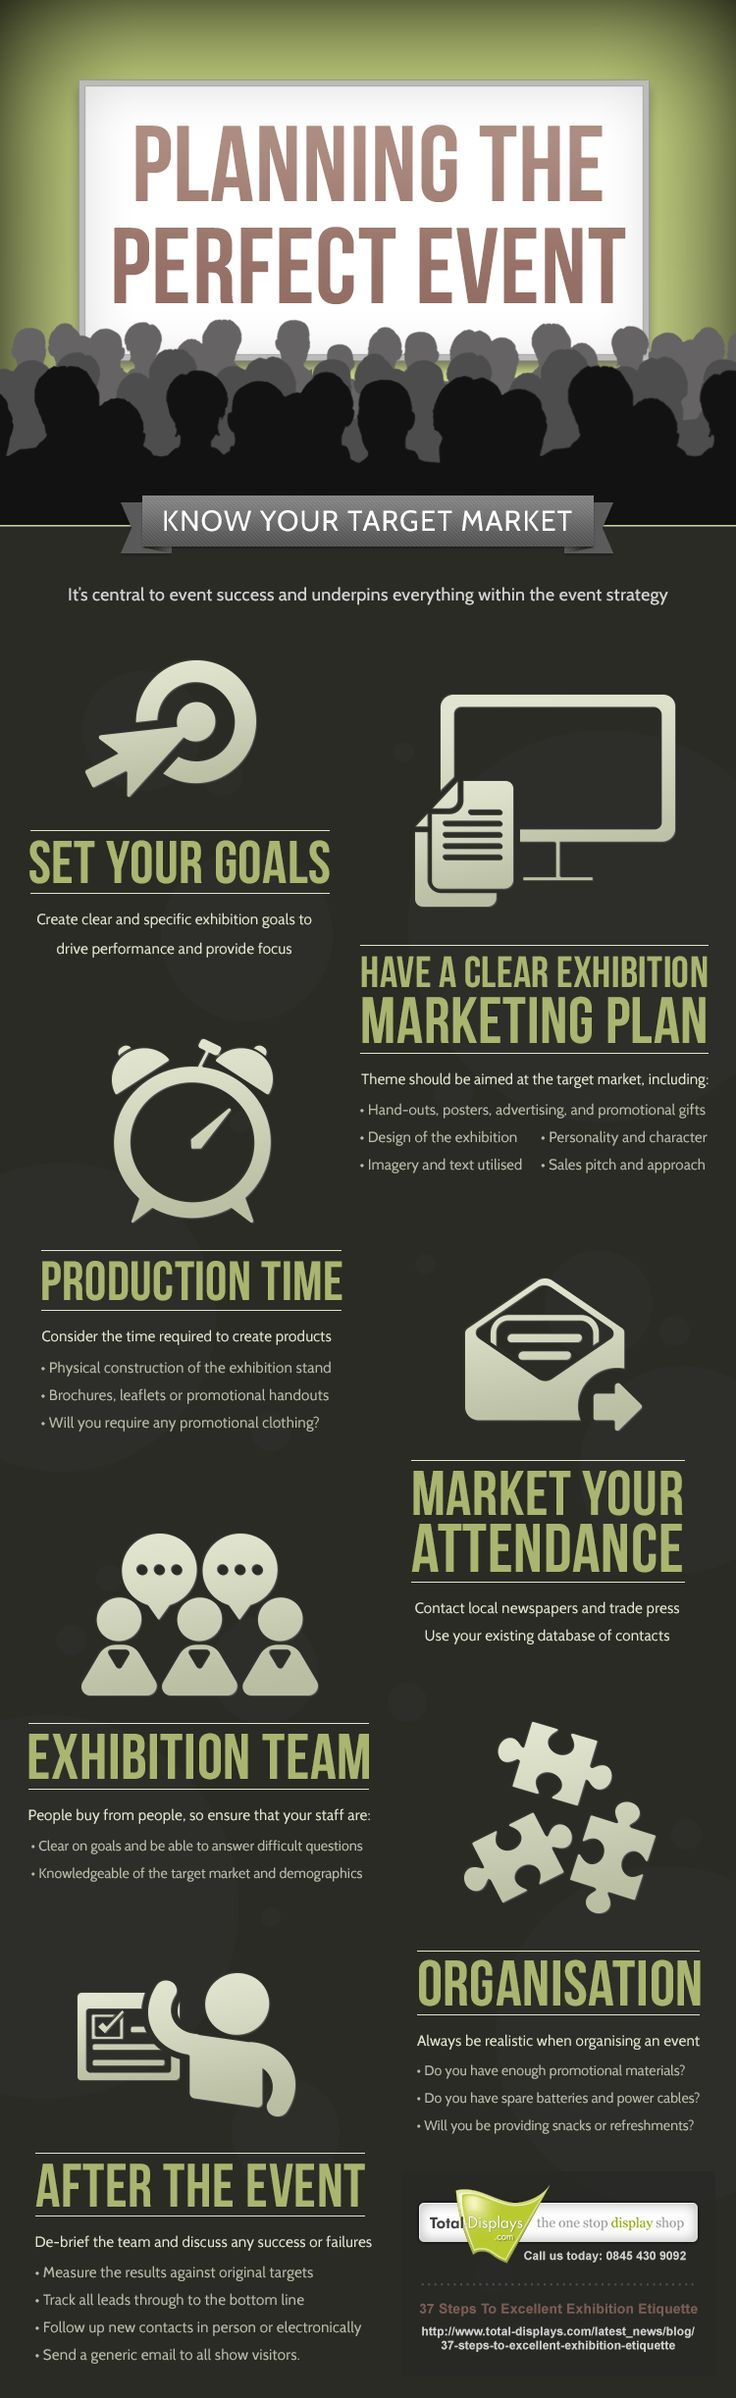 How to Plan the Perfect Event Event planning tips, Event